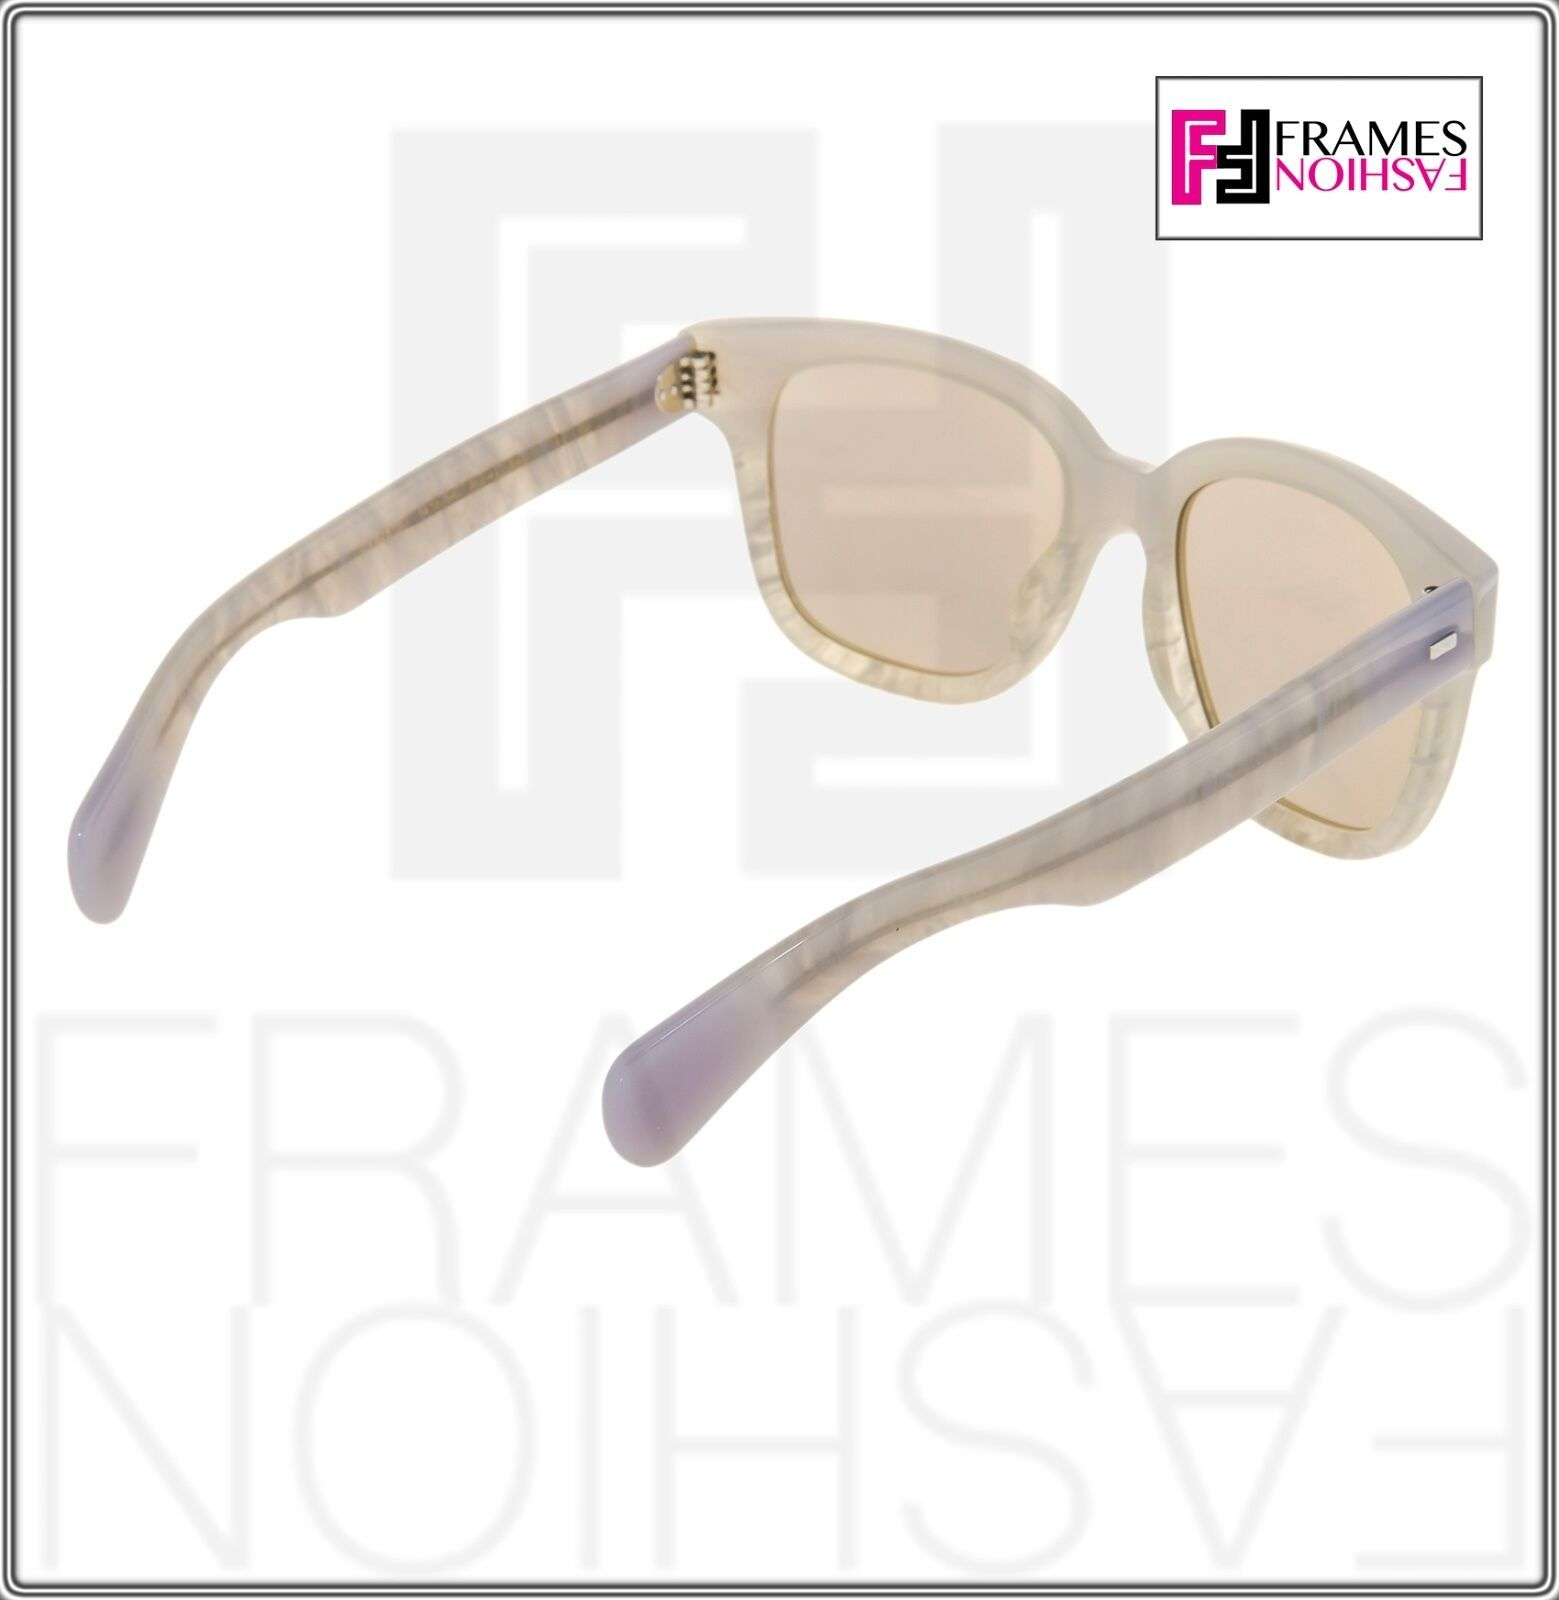 OLIVER PEOPLES Brinley OV5281SU Opal Pearl Gold Mirrored Sunglasses 5281 image 5